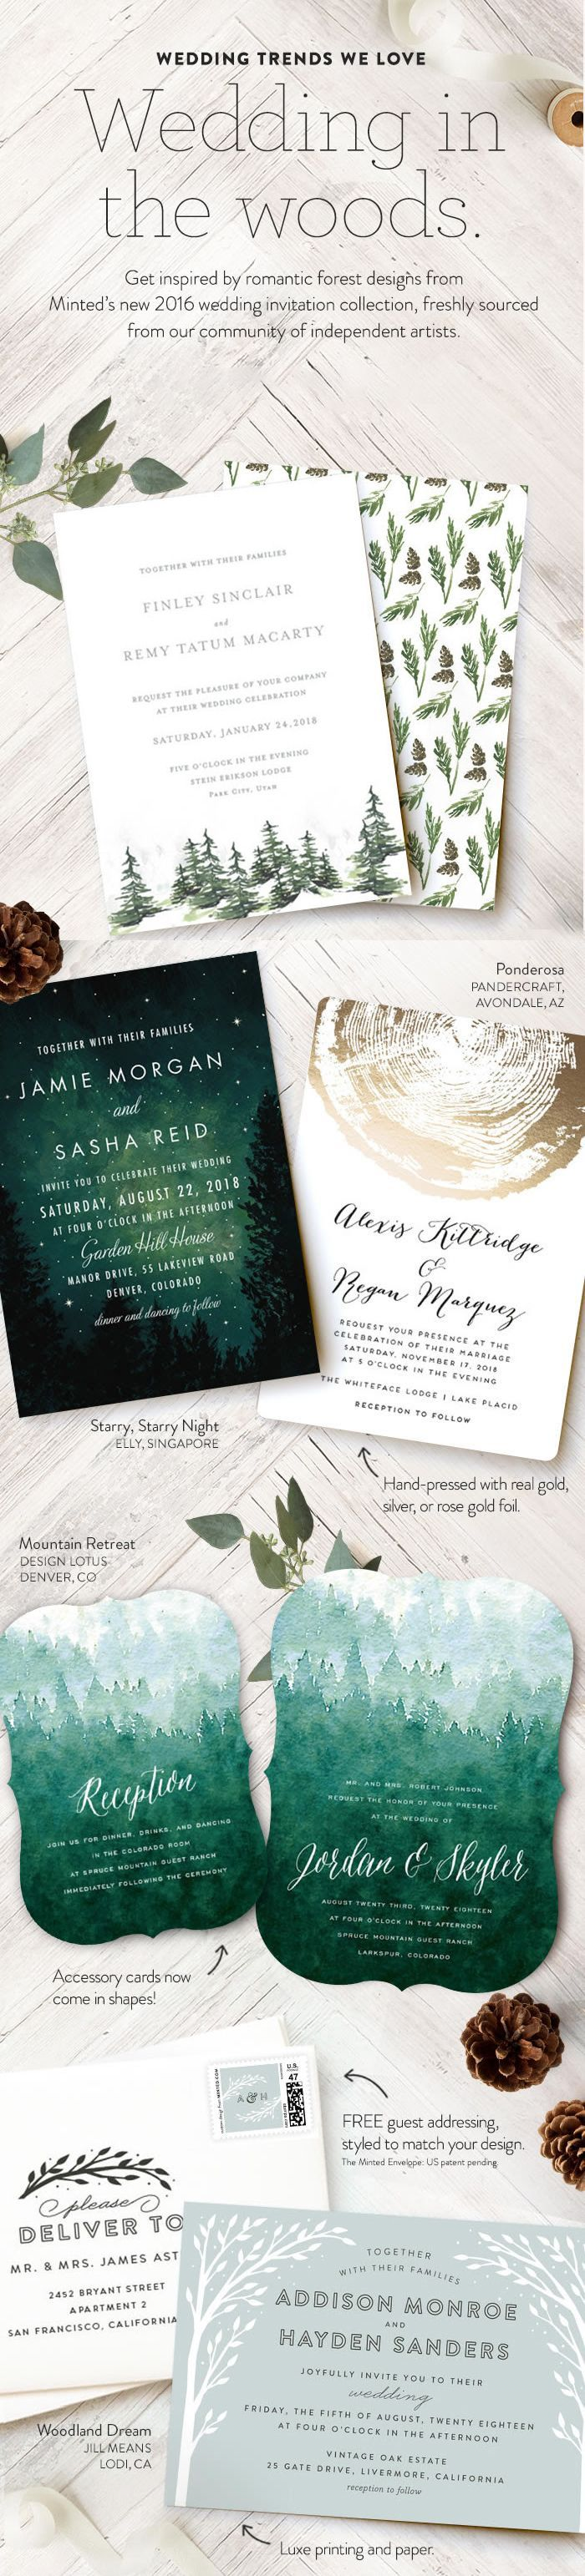 how to make wedding invitation card in microsoft word007%0A Get inspired by romantic forest wedding invitations designs from our  Minted u    s collection of wedding stationery and